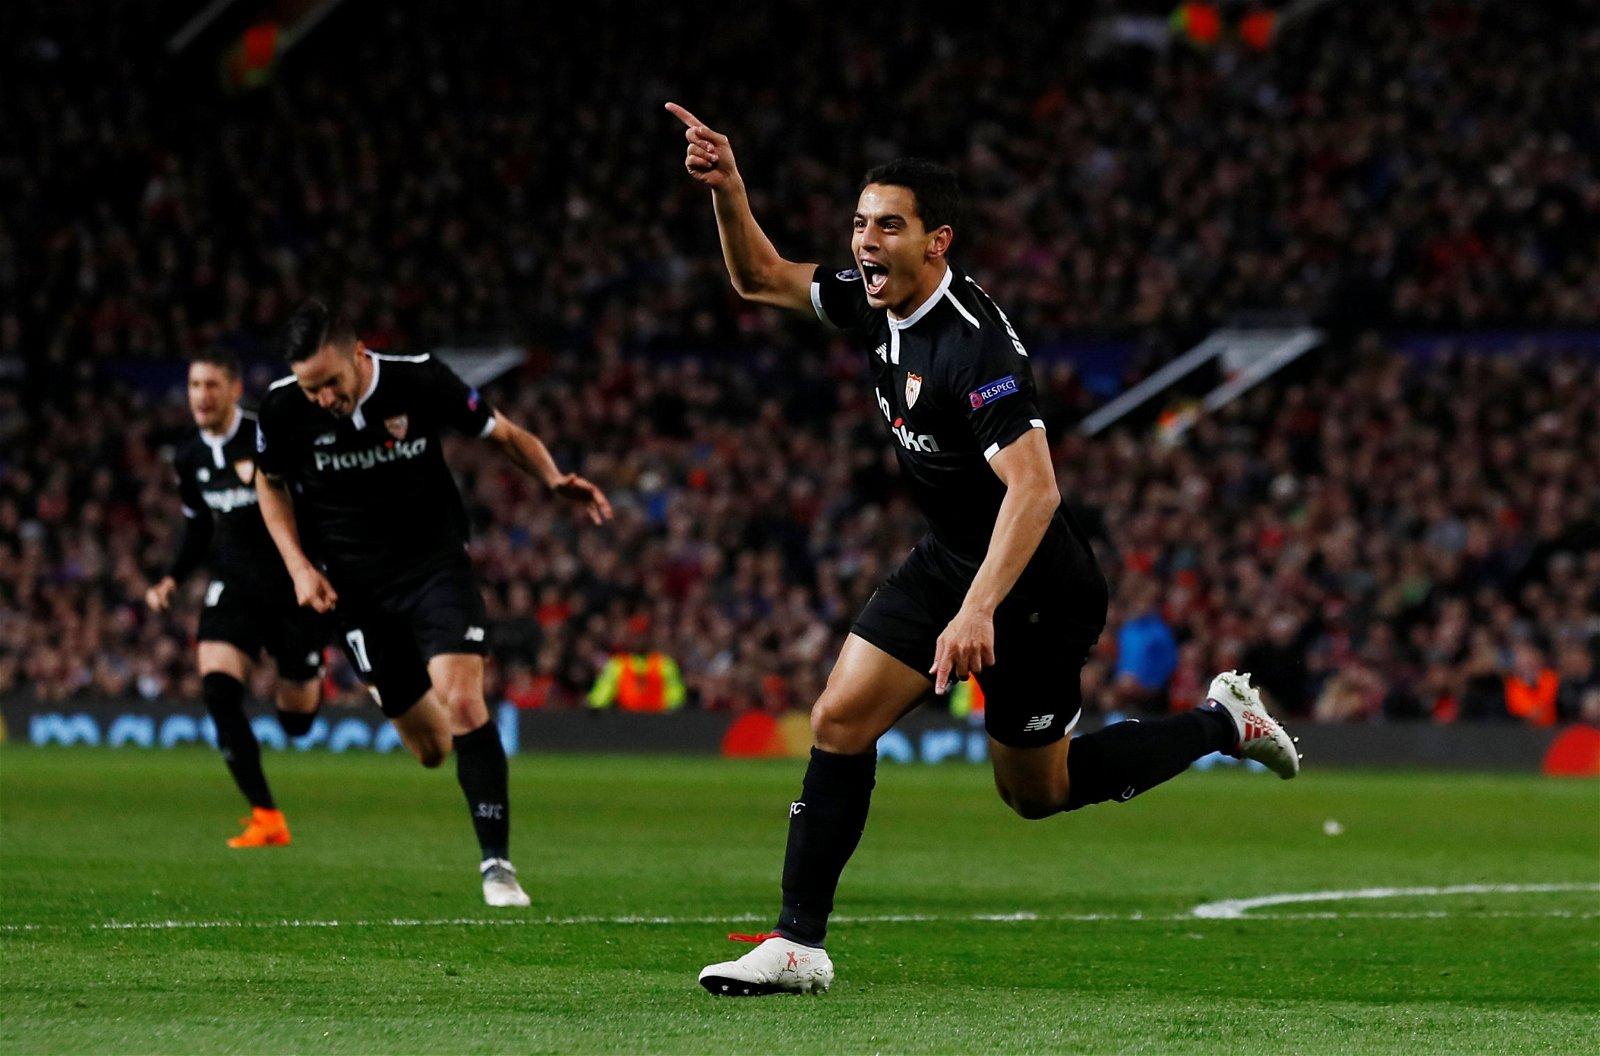 Sevilla forward Wissam Ben Yedder celebrates goal against Man United